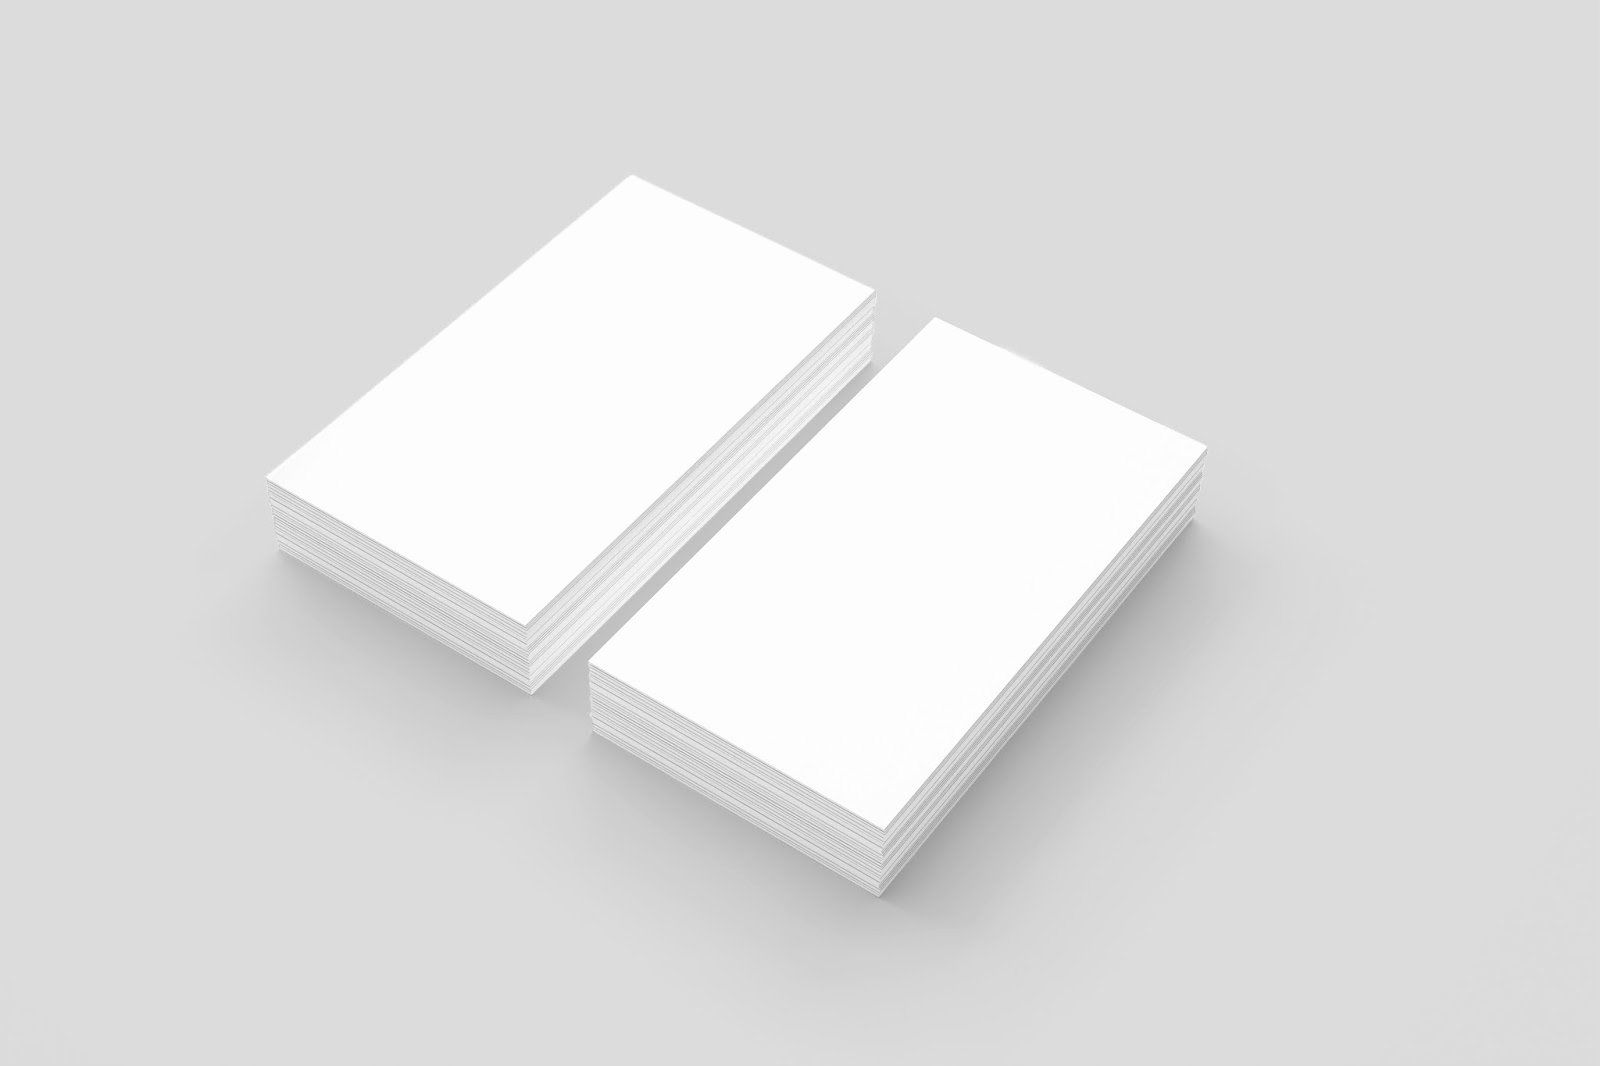 Blank Template For Business Cards Luxury Blank Business Cards Business Card Tips Free Business Card Templates Blank Business Cards Card Templates Free